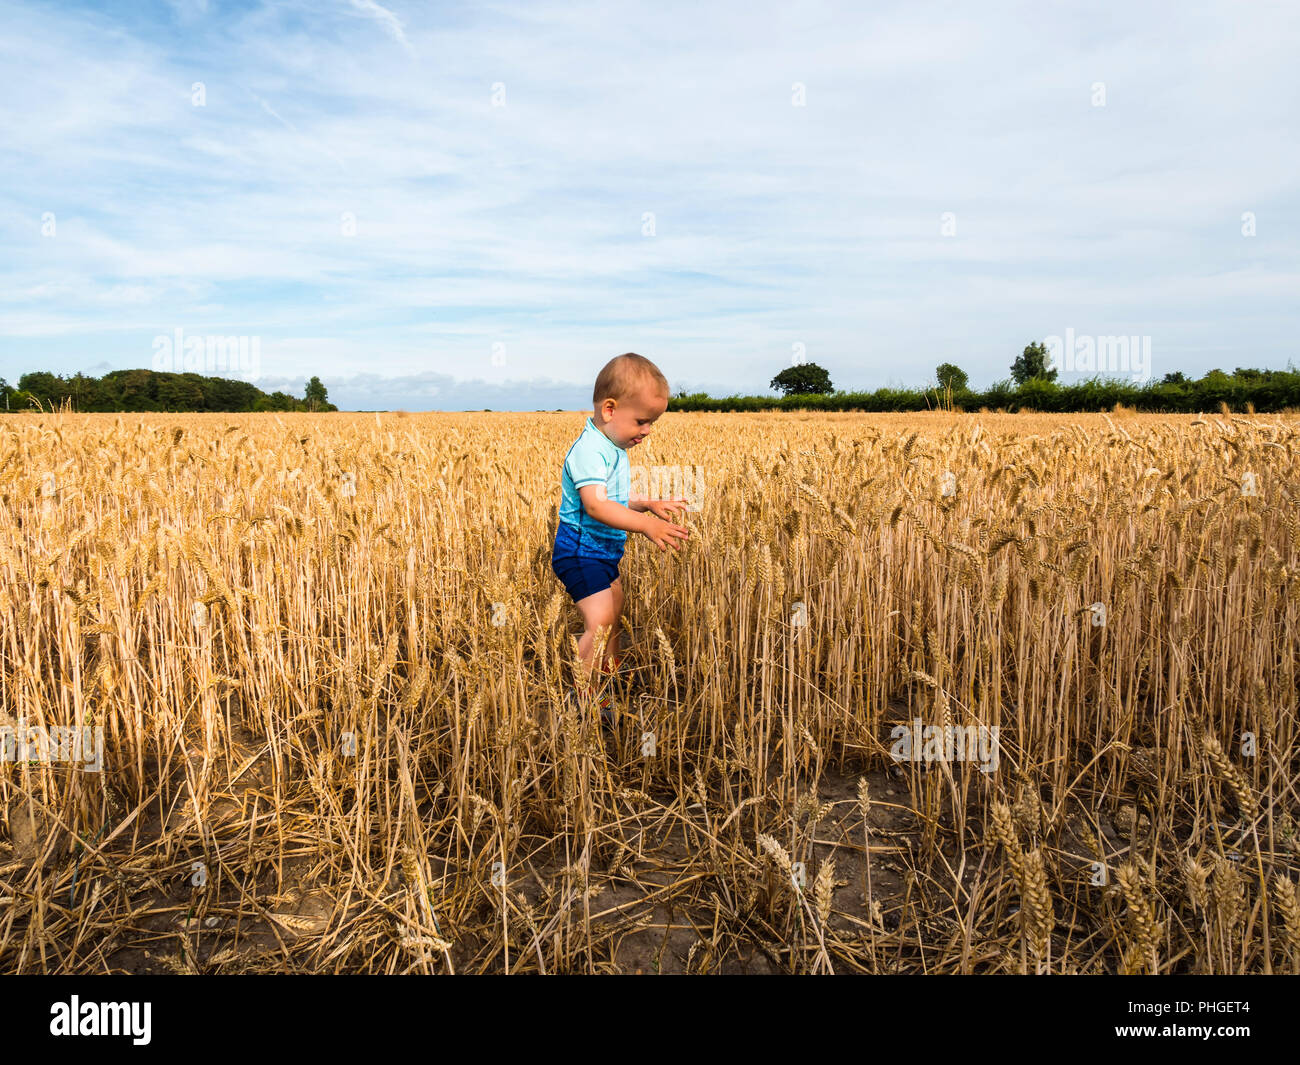 baby boy in blue swimming suit in the british field with wheat. - Stock Image